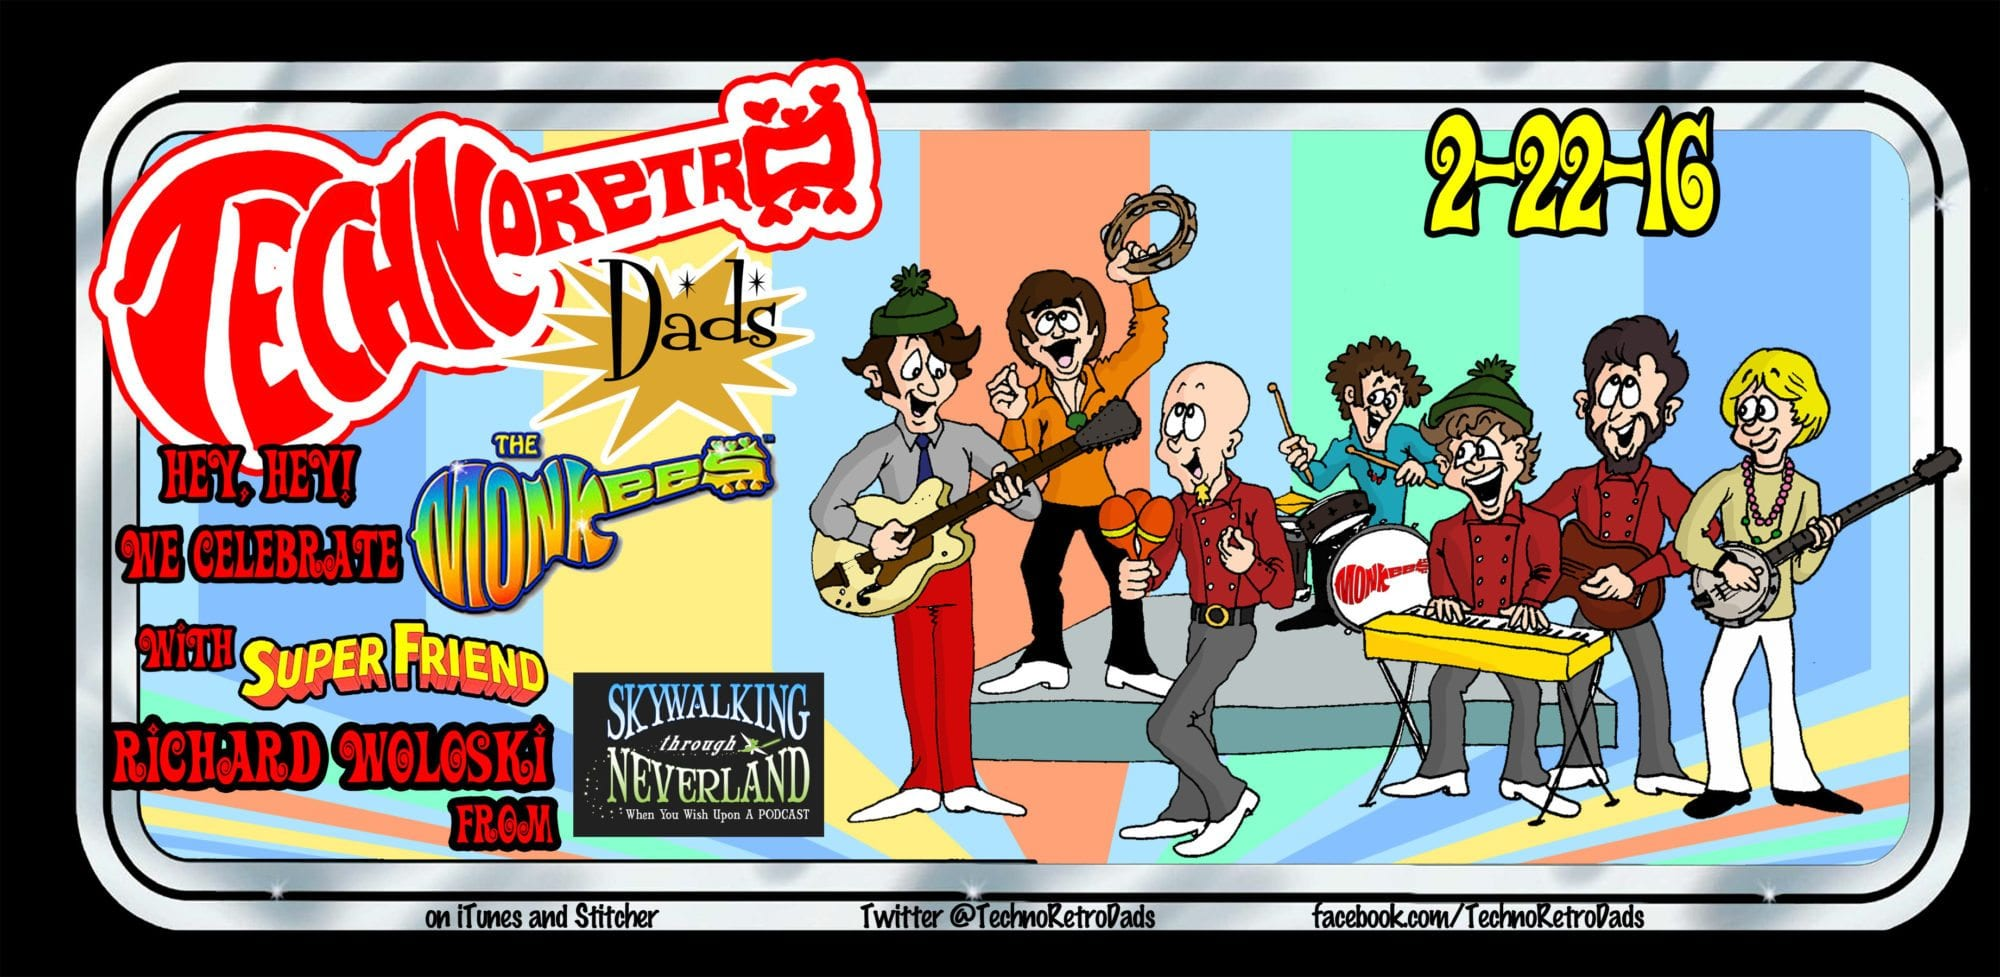 TechnoRetro Dads Celebrate 50 Years of The Monkees with SuperFriend Richard Woloski